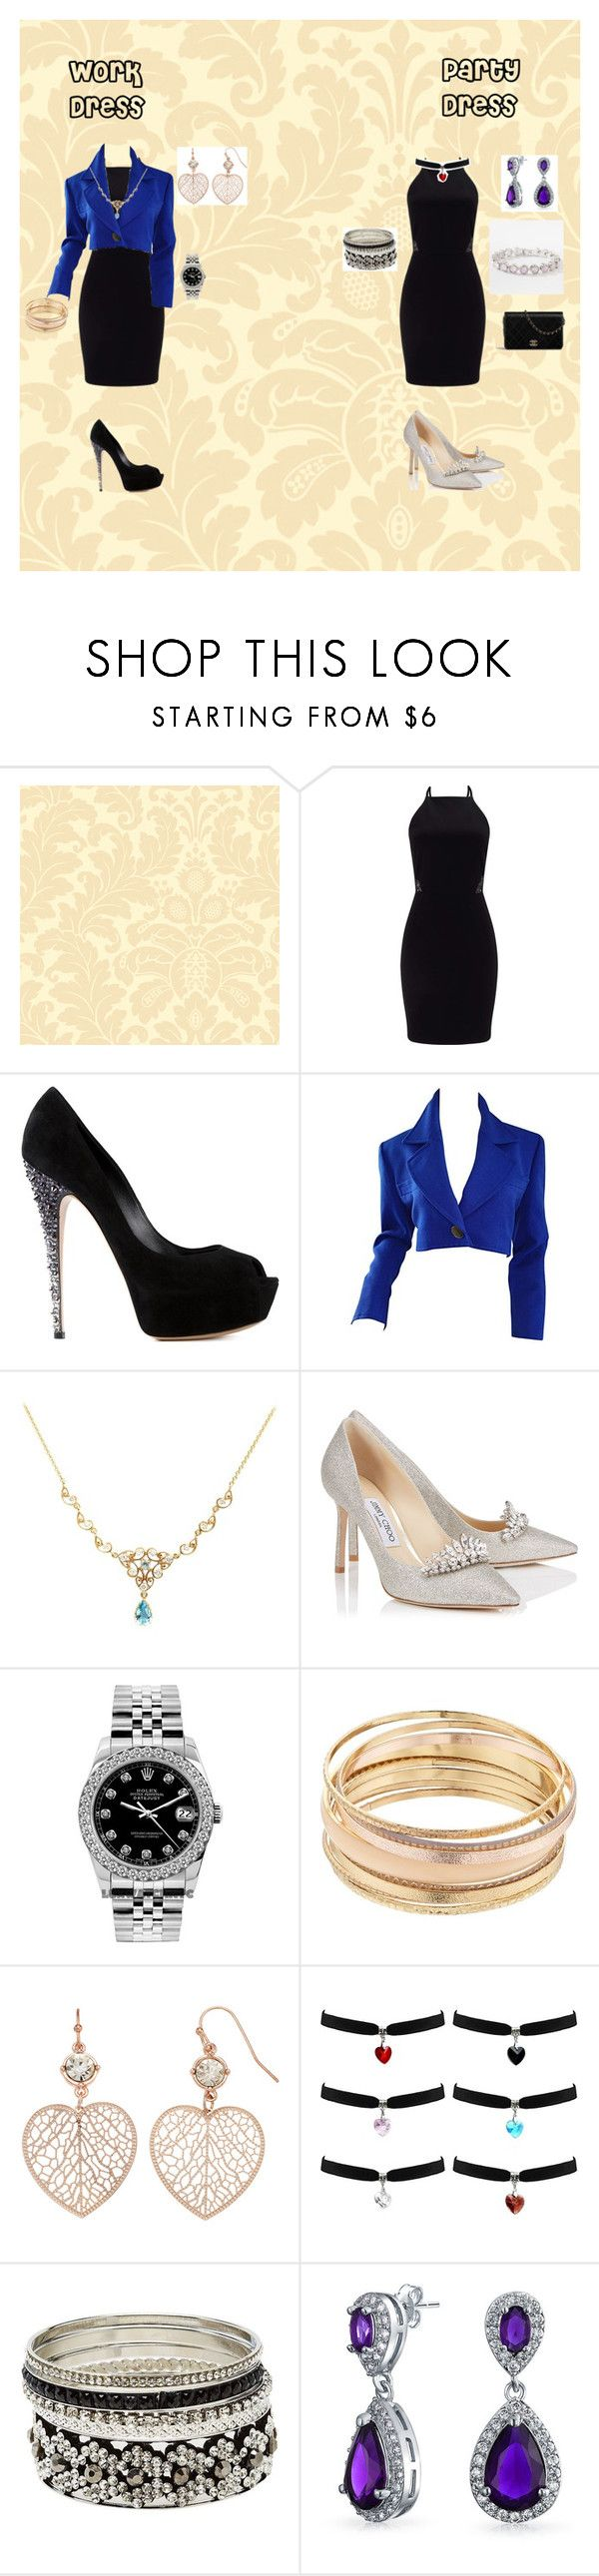 """work/ party dress"" by epgty on Polyvore featuring York Wallcoverings, Miss Selfridge, Casadei, Yves Saint Laurent, Jimmy Choo, Rolex, Mudd, LC Lauren Conrad, Charlotte Russe and Bling Jewelry"